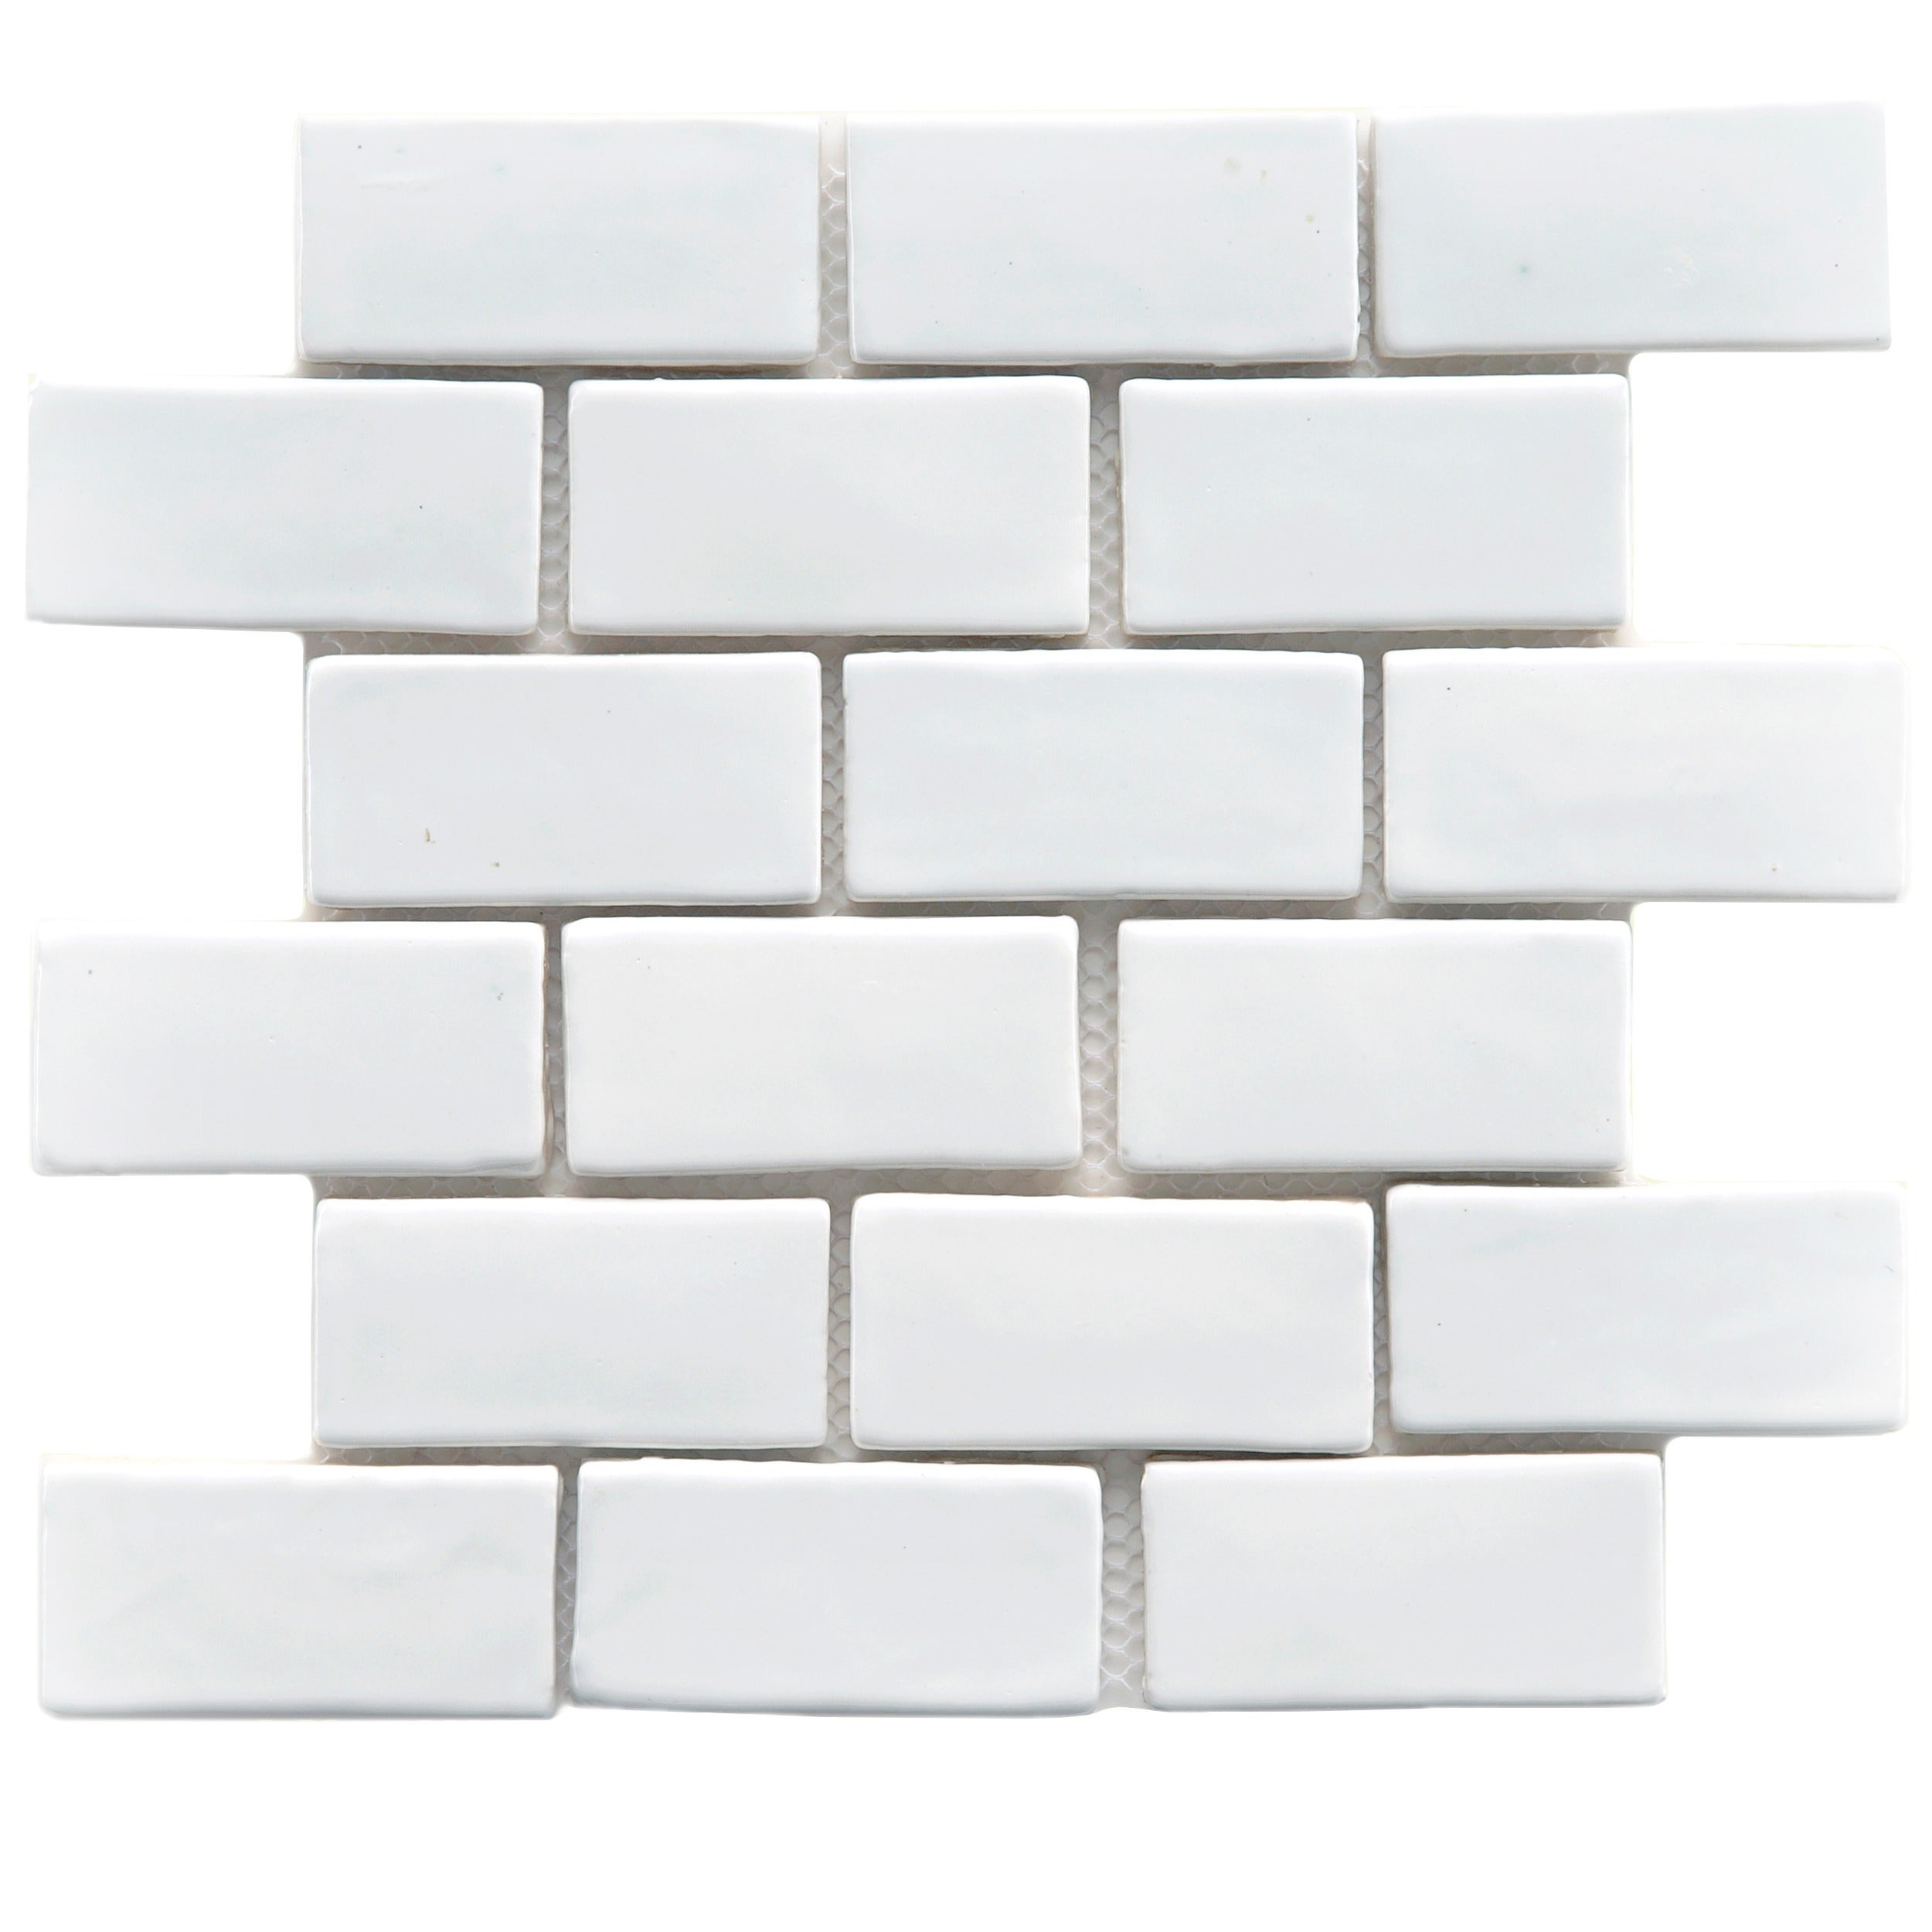 Somertile 12x12 in london subway white handmade ceramic mosaic tile somertile 12x12 in london subway white handmade ceramic mosaic tile pack of 5 free shipping today overstock 13339414 dailygadgetfo Gallery